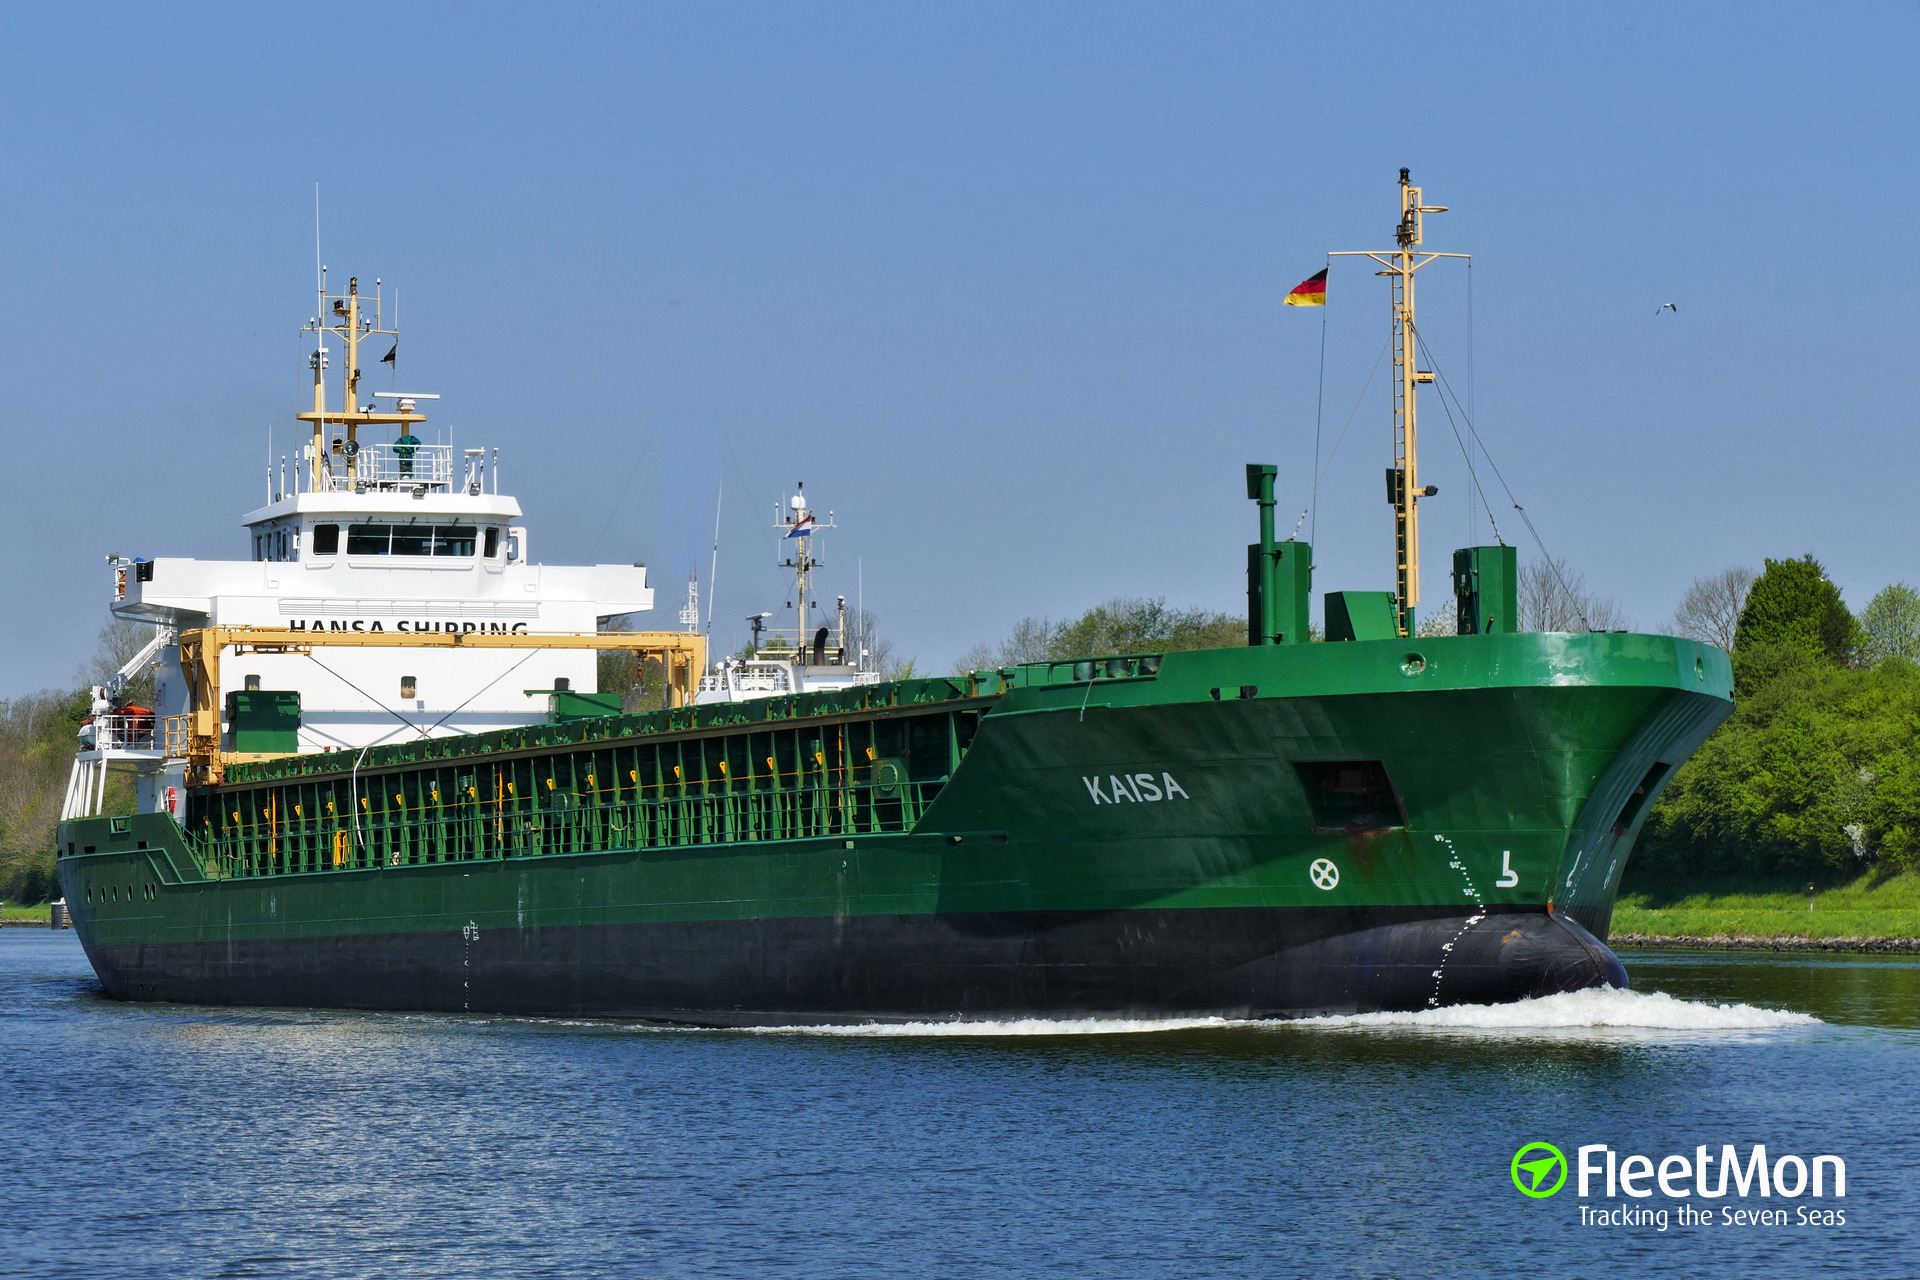 Bulk carrier ran aground off Sweden, captain found drunk